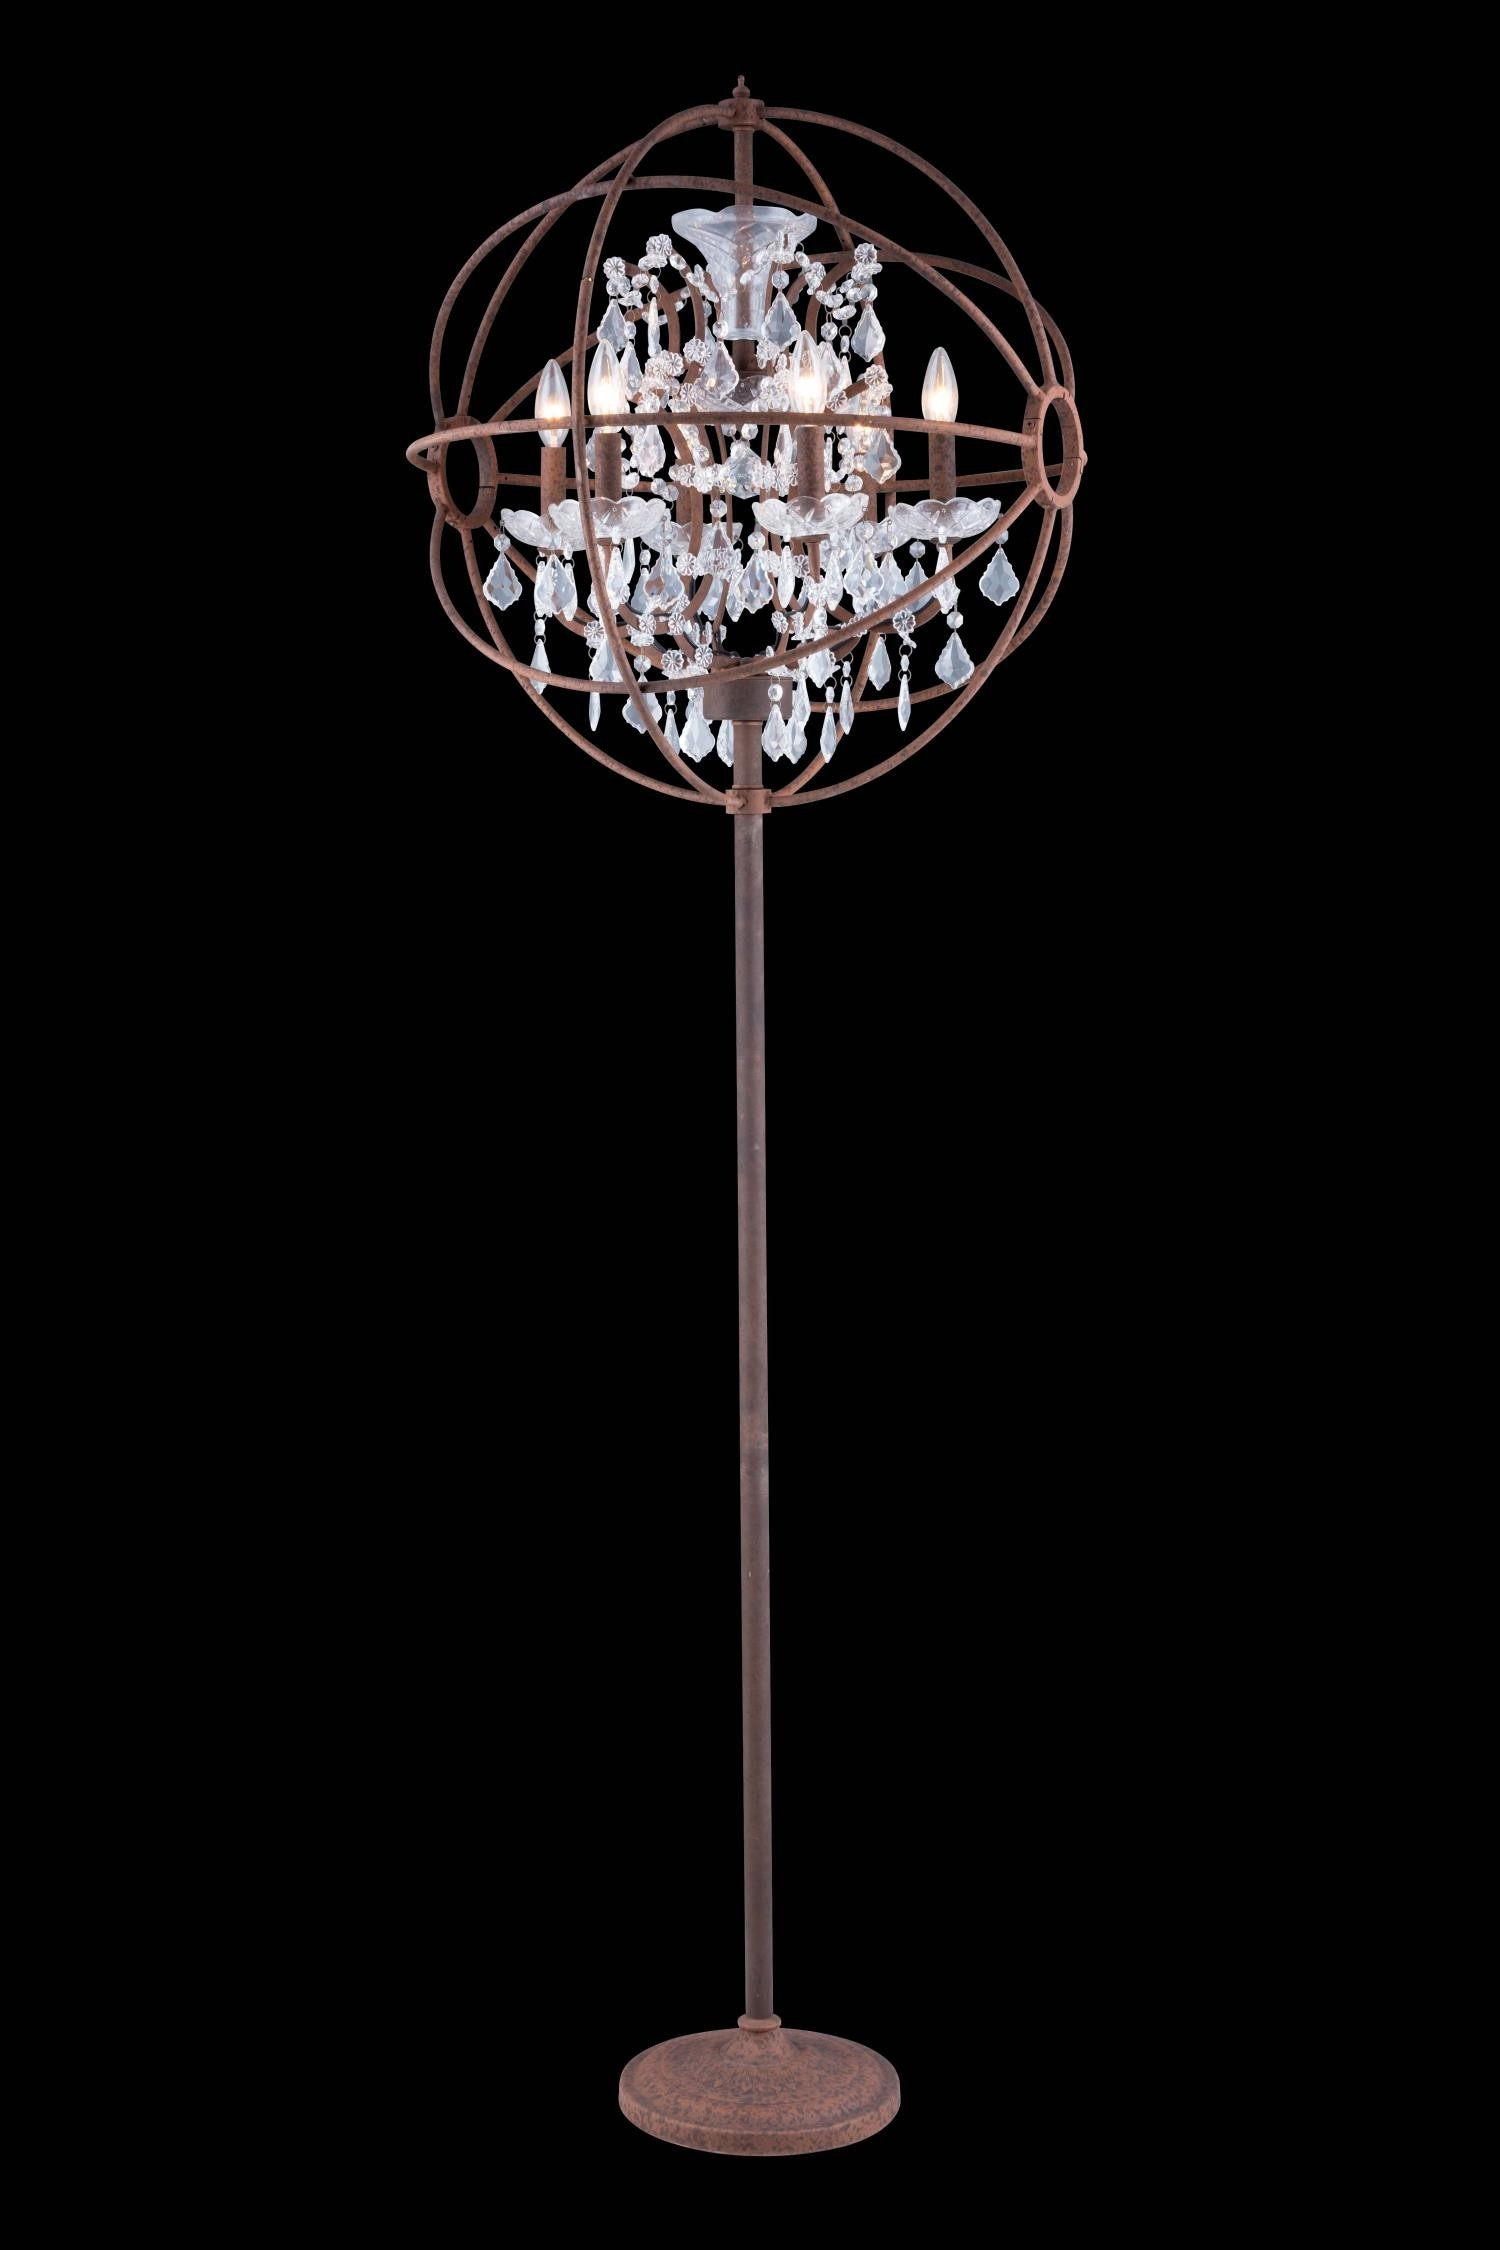 Lights Polished Chrome Floor Lamp Chandelier Floor Lamp Within Standing Chandeliers (View 7 of 25)